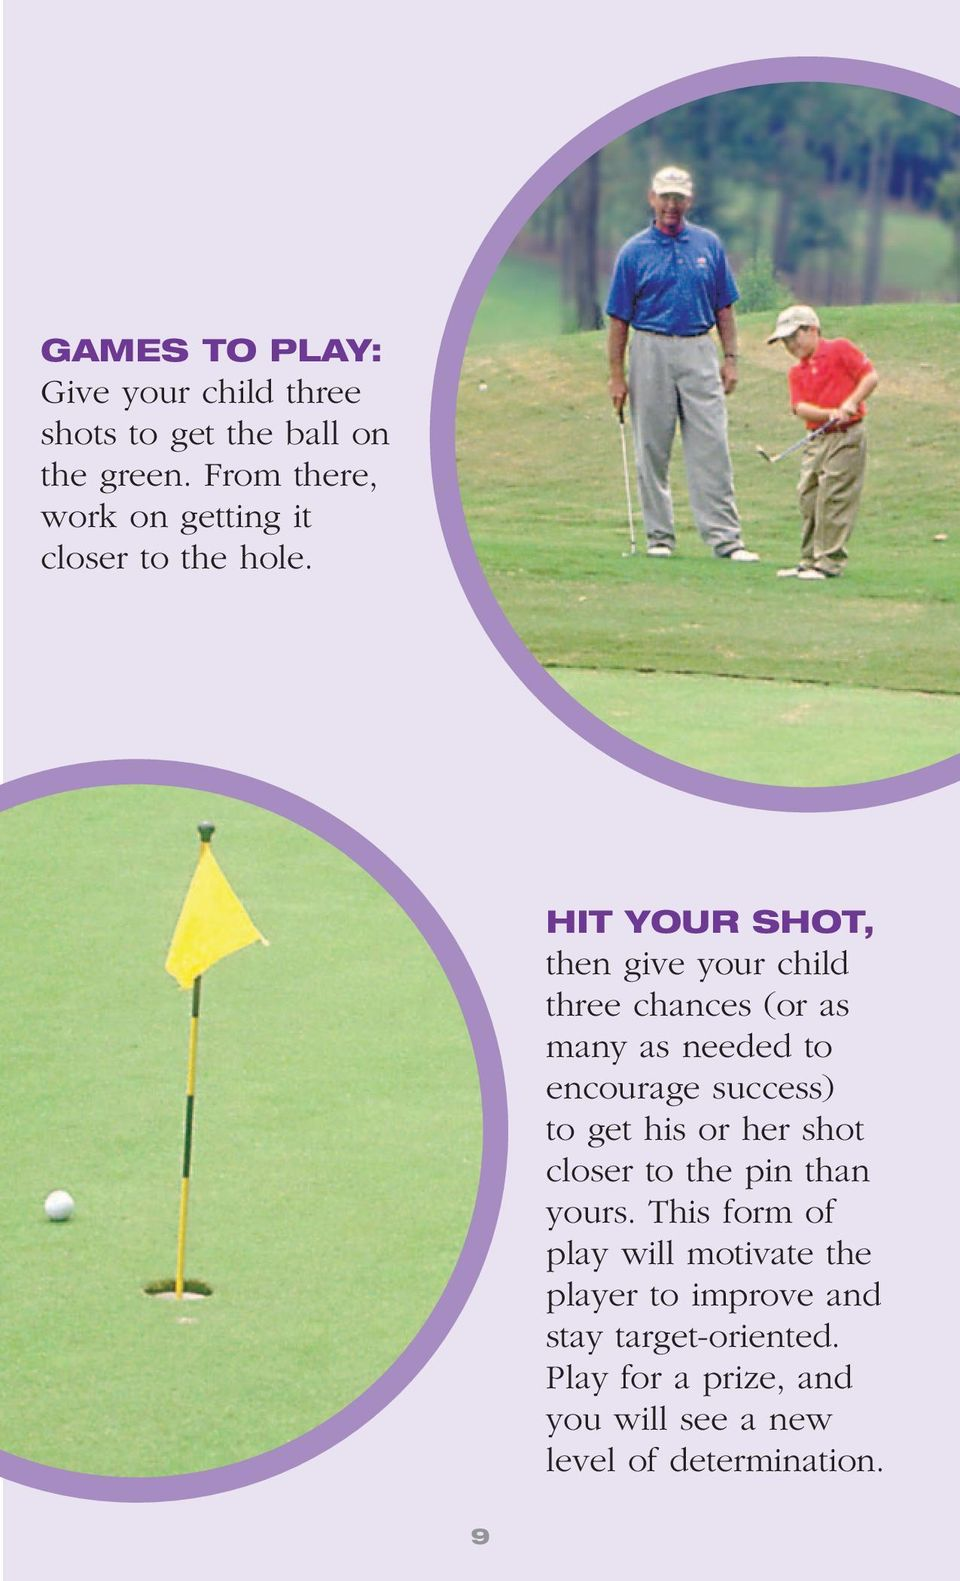 HIT YOUR SHOT, then give your child three chances (or as many as needed to encourage success) to get his